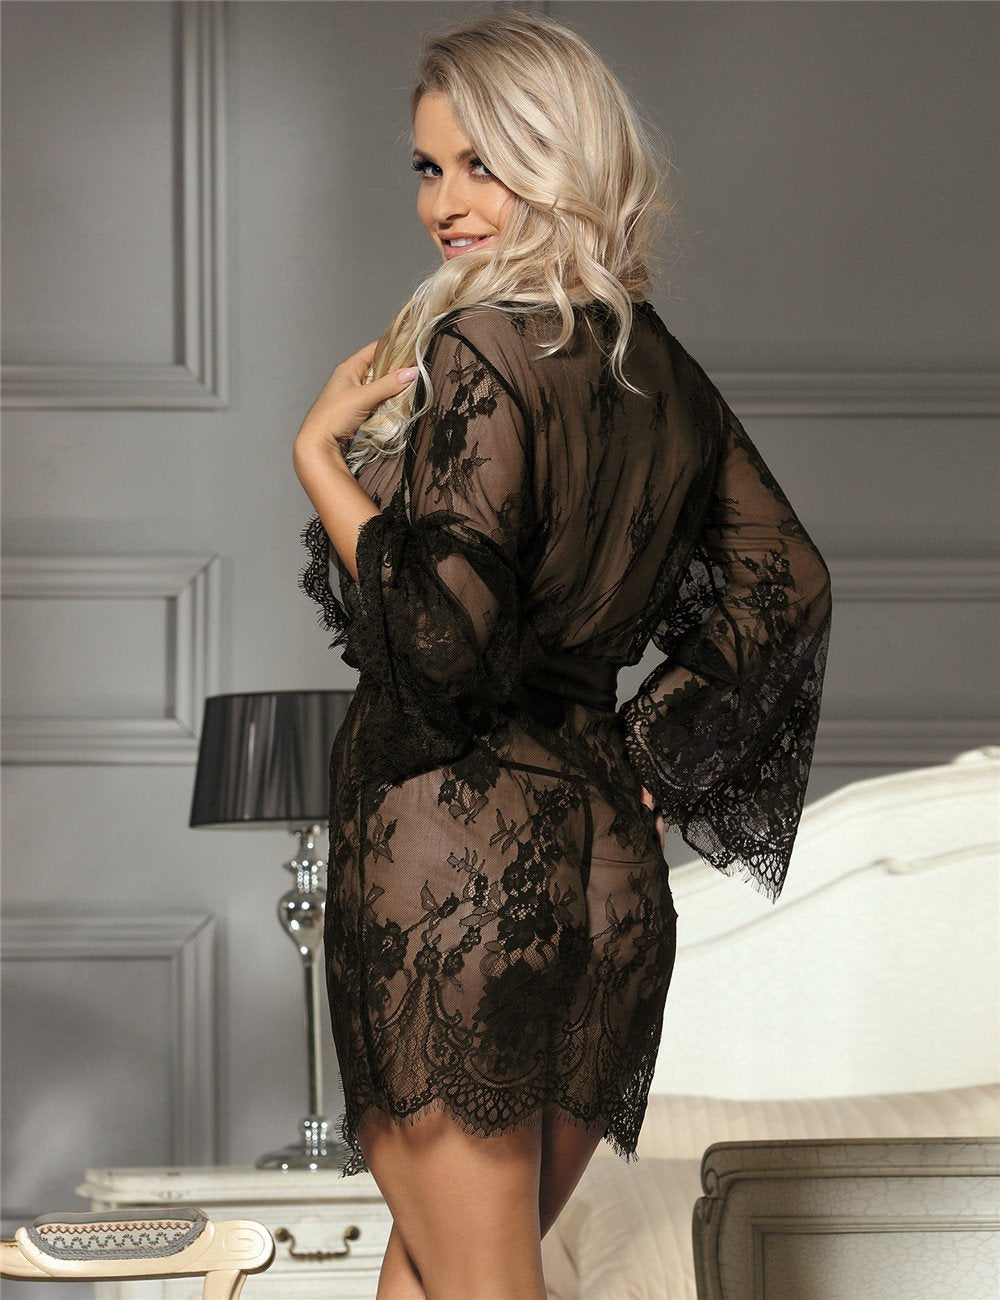 Short Black Lace Lingerie Robe